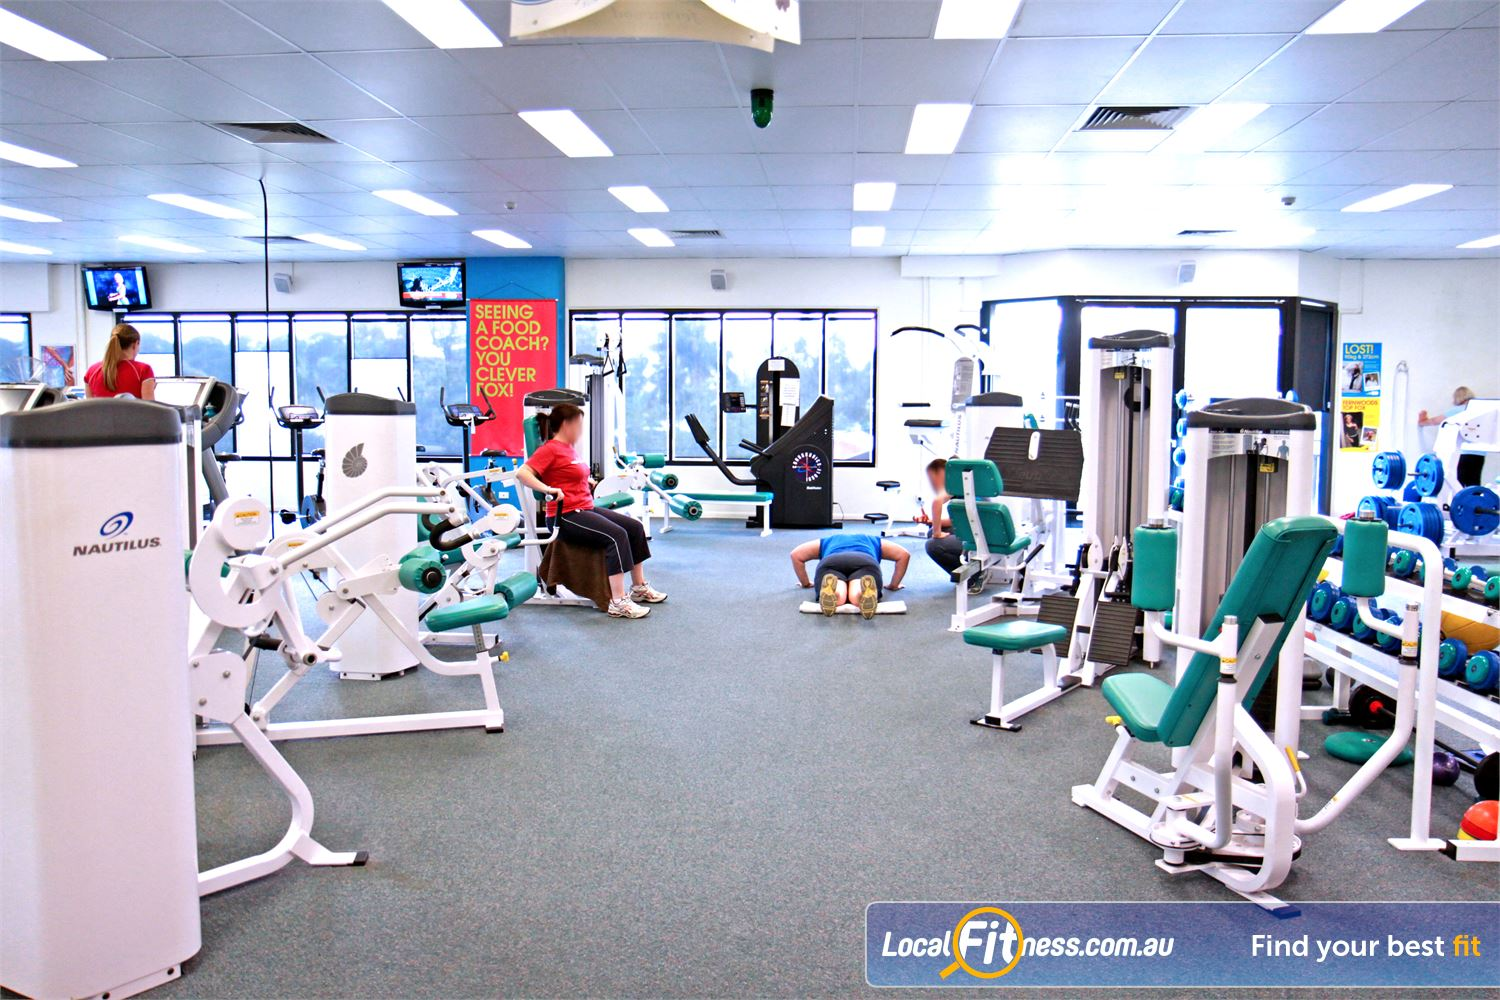 Fernwood Fitness Petrie The Fernwood Petrie gym is spacious and naturally lit.